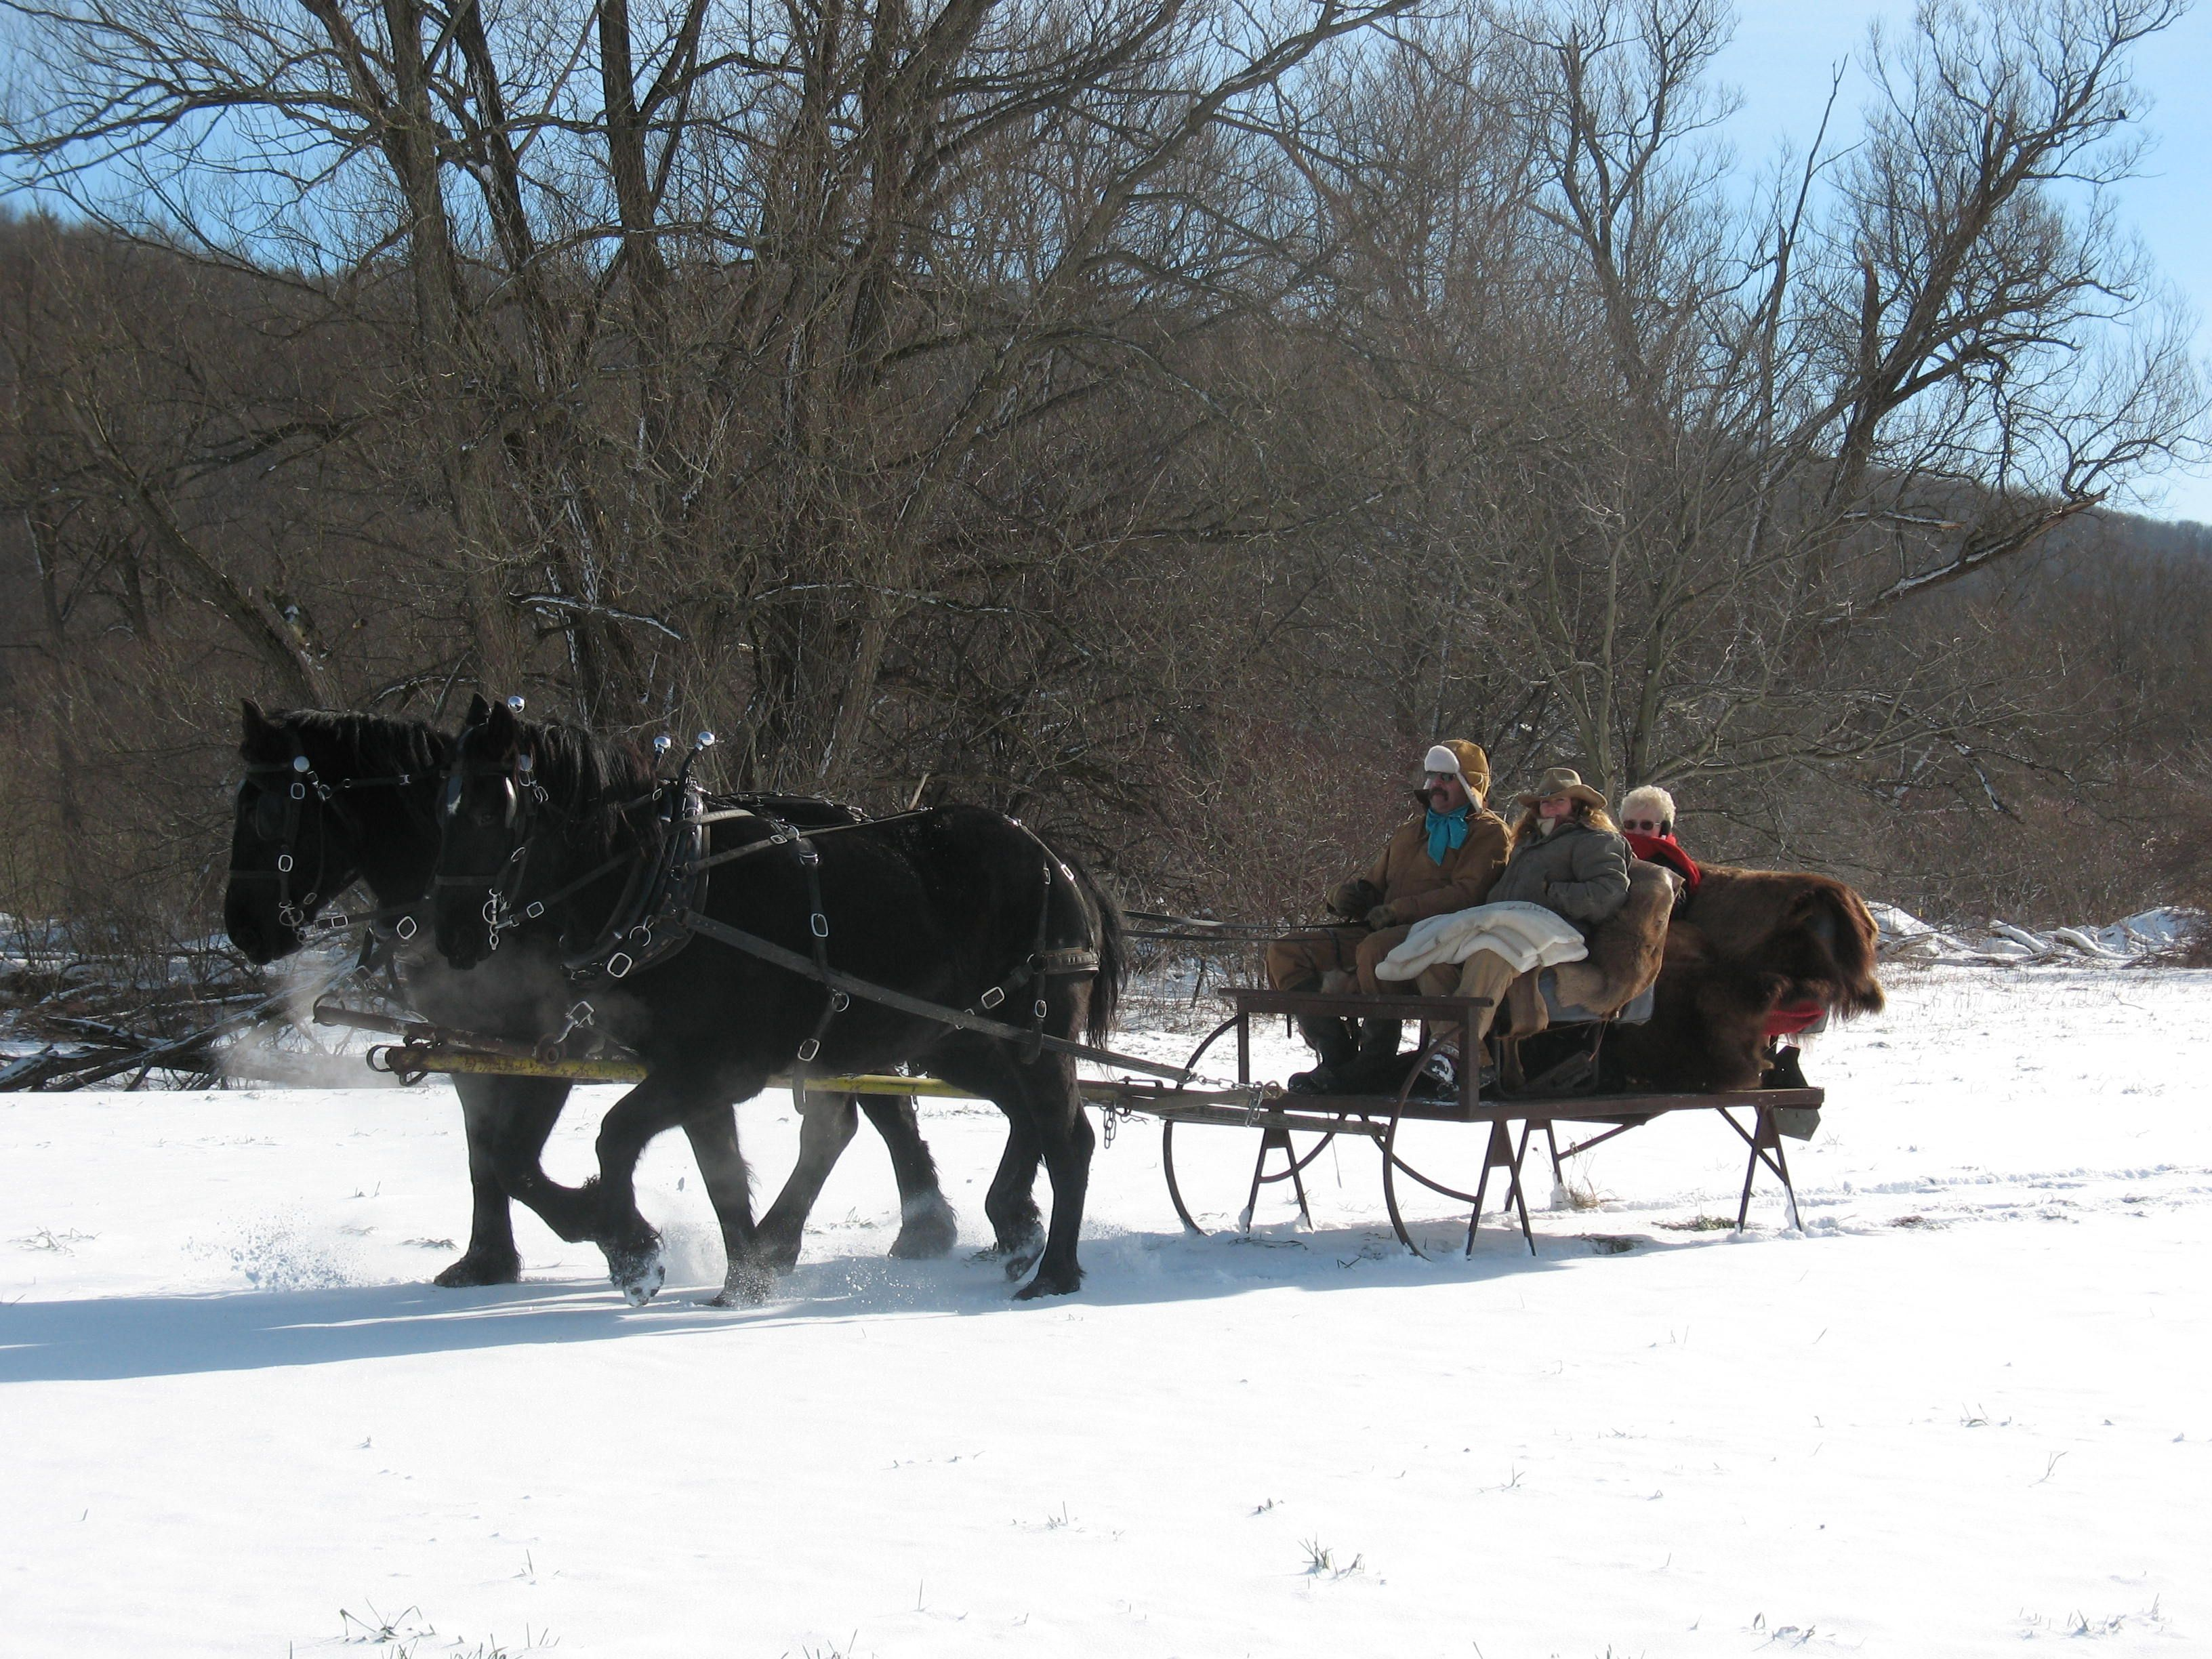 Go for a charming horse drawn sleigh ride with the